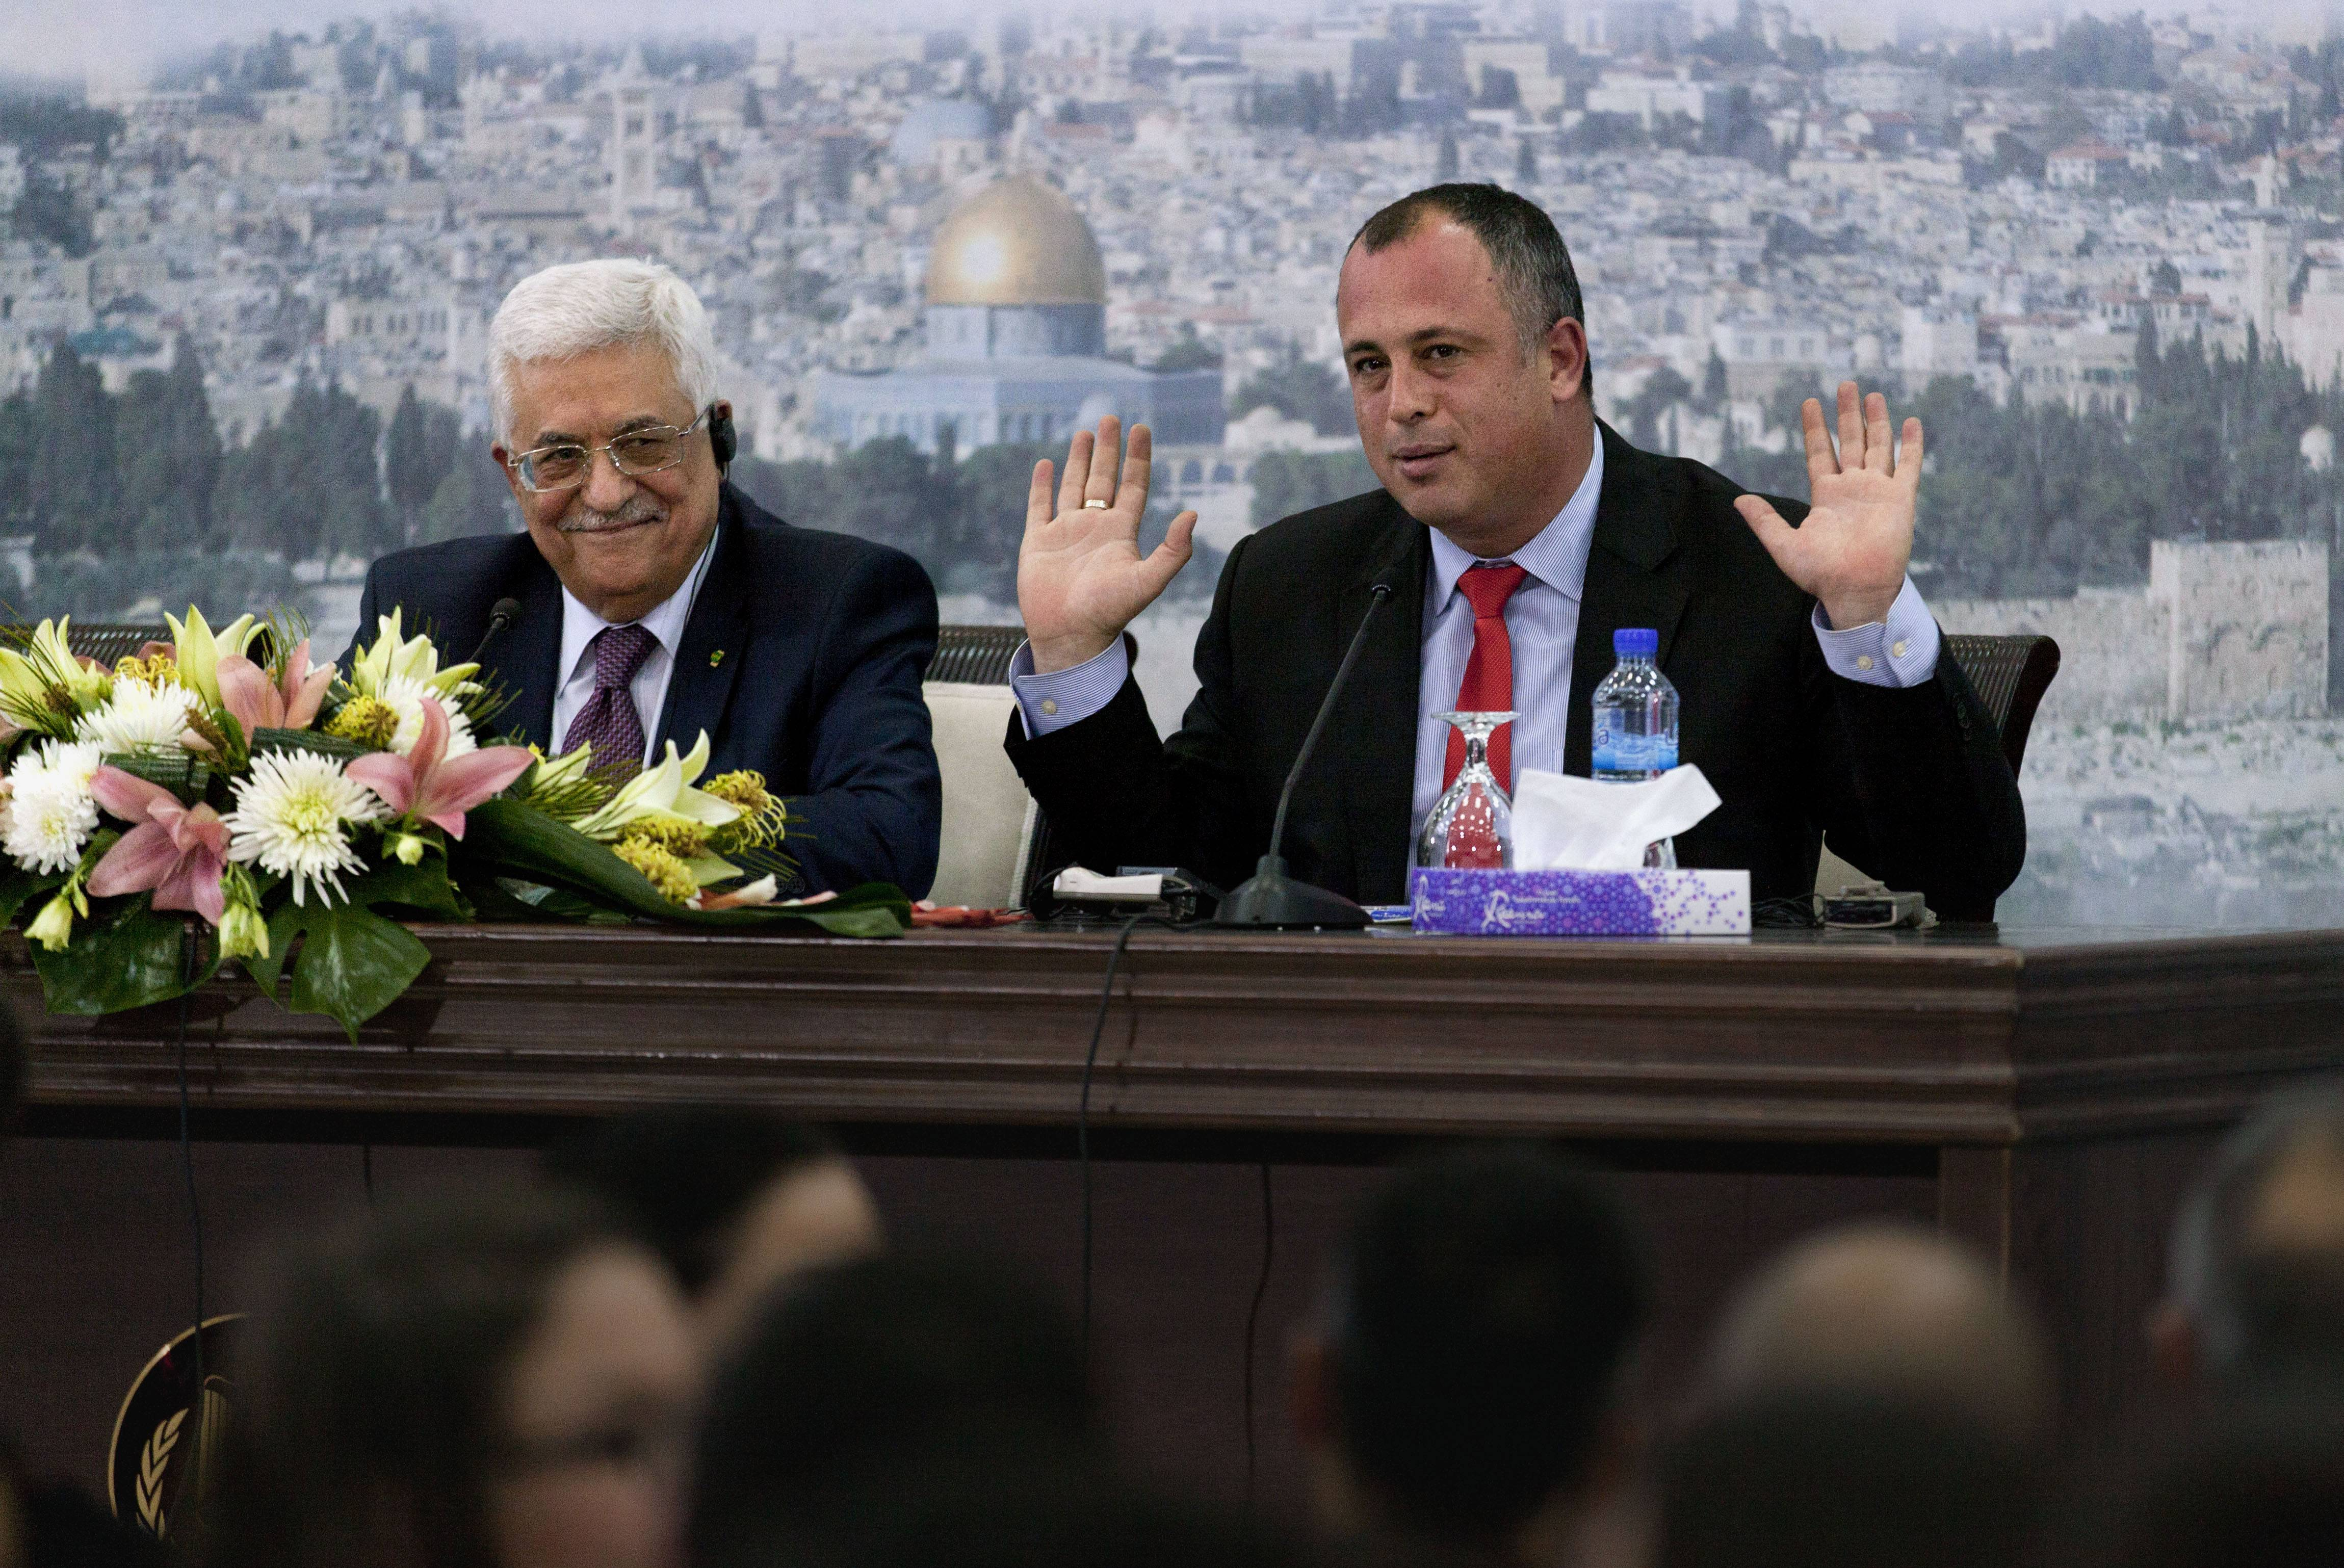 "Palestinian President Mahmoud Abbas, left and Israeli Labor party lawmaker Hilik Bar attend a meeting with a delegation of mostly Israeli university students and activists at the presidential headquarters Sunday in the West Bank city of Ramallah. Abbas said that he does not want to ""drown Israel with millions of (Palestinian) refugees to change its nature."" Abbas' comment Sunday was his most conciliatory yet on the fate of Palestinian refugees who were uprooted from homes in what is now Israel, including in the 1948 war over Israel's creation."